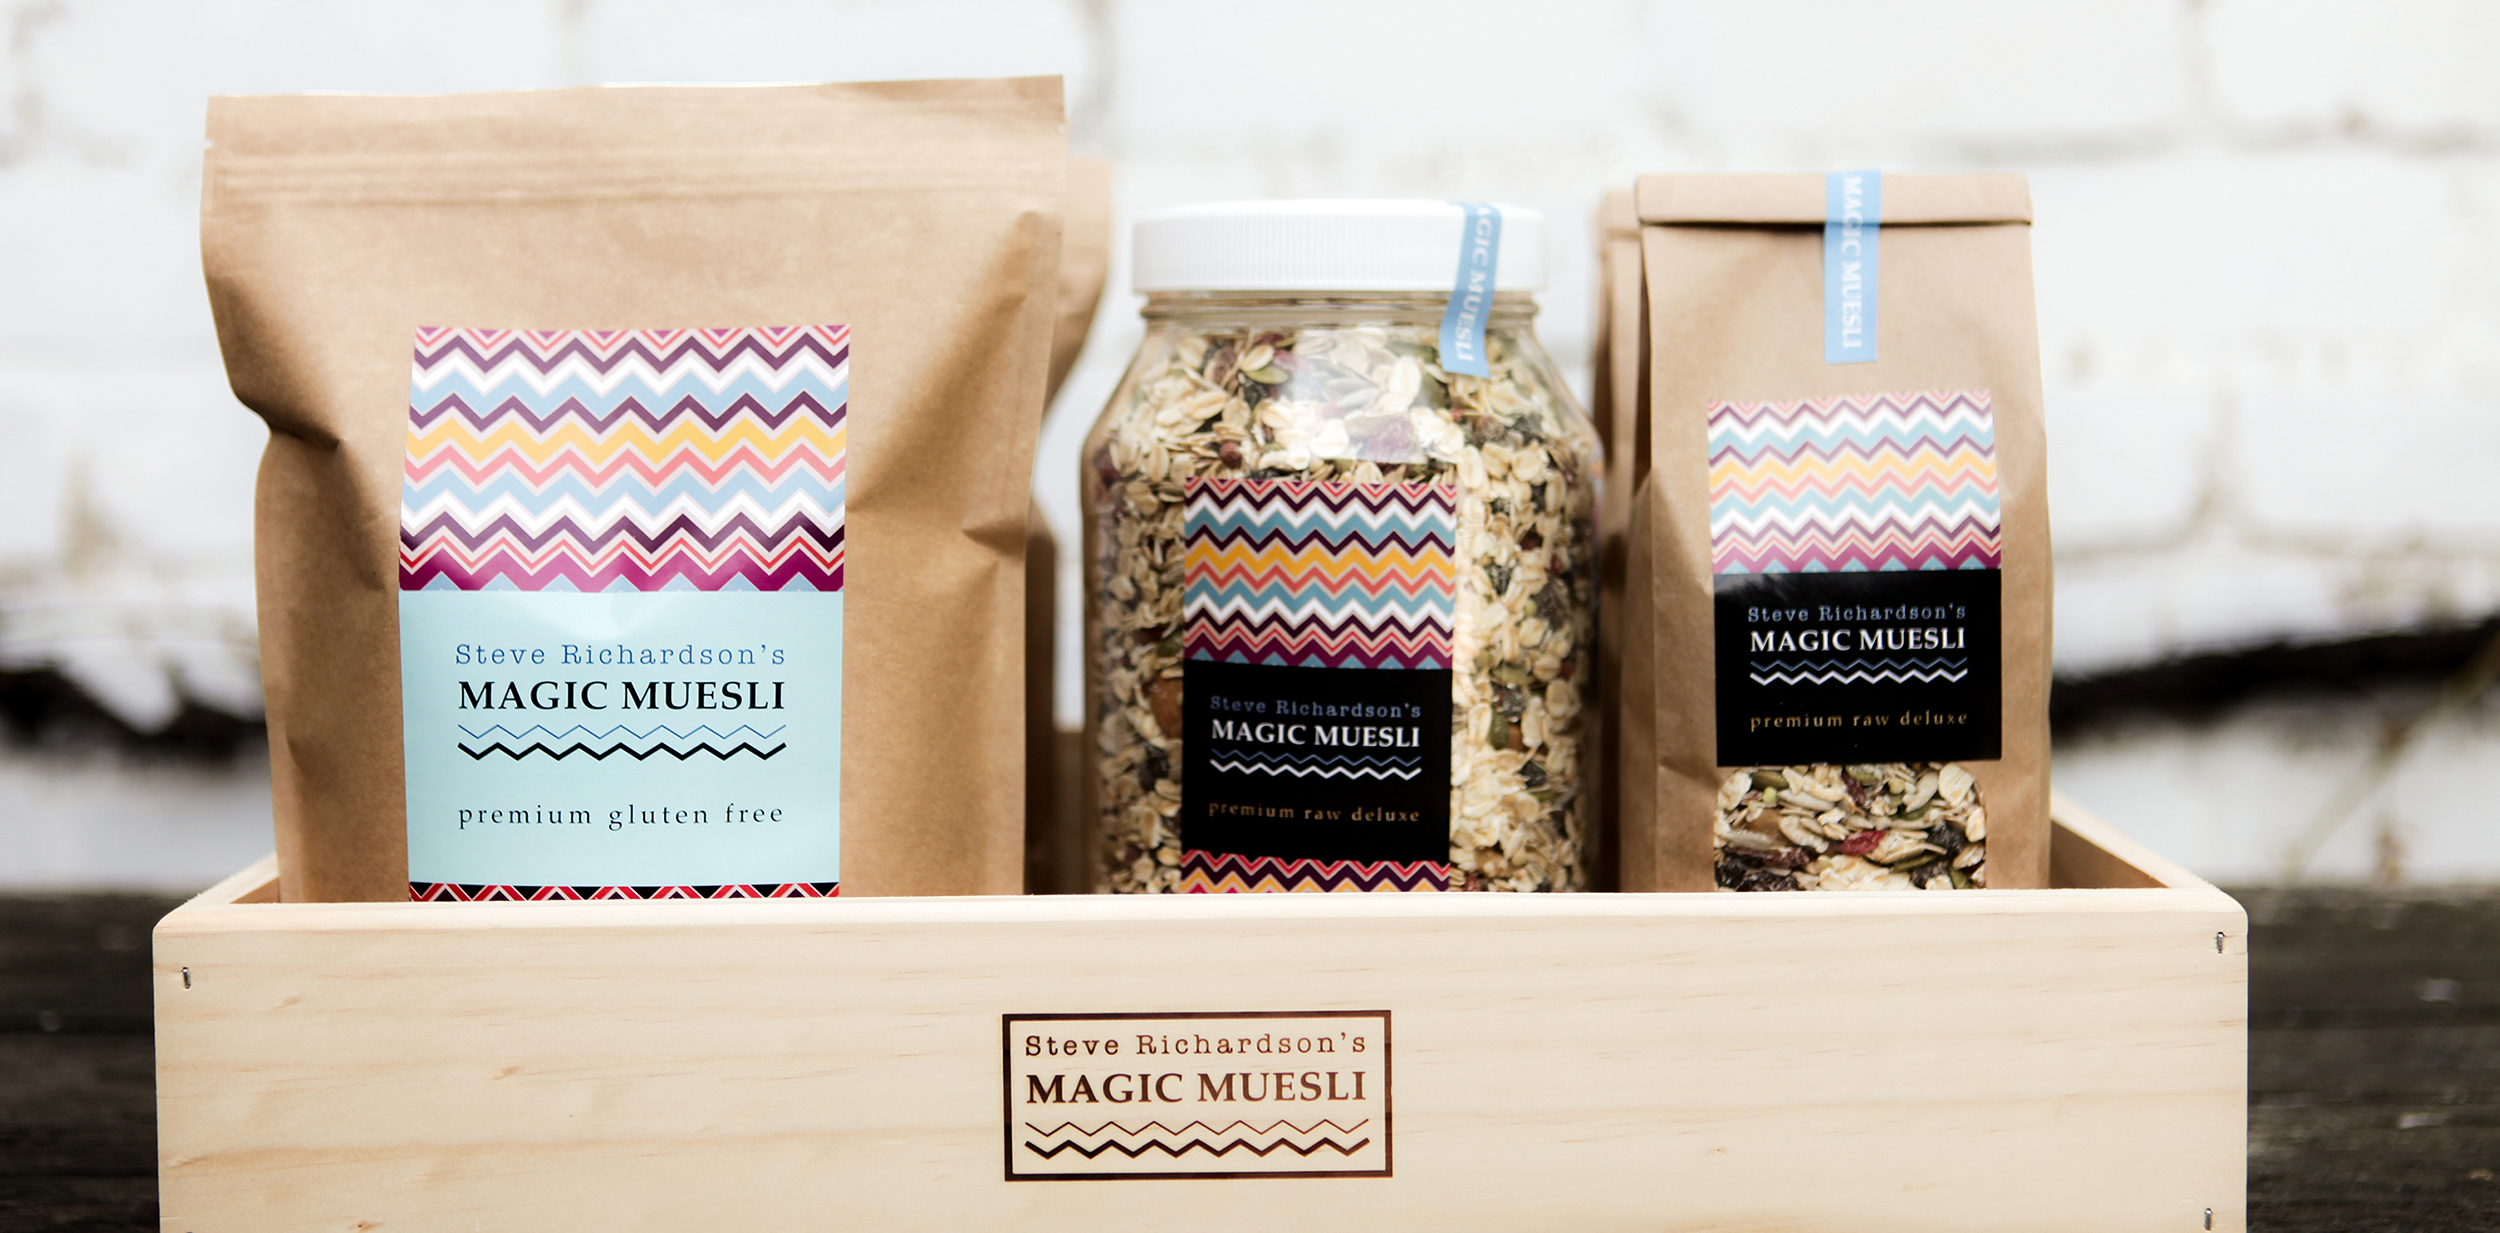 Steve Richardson's Magic Muesli